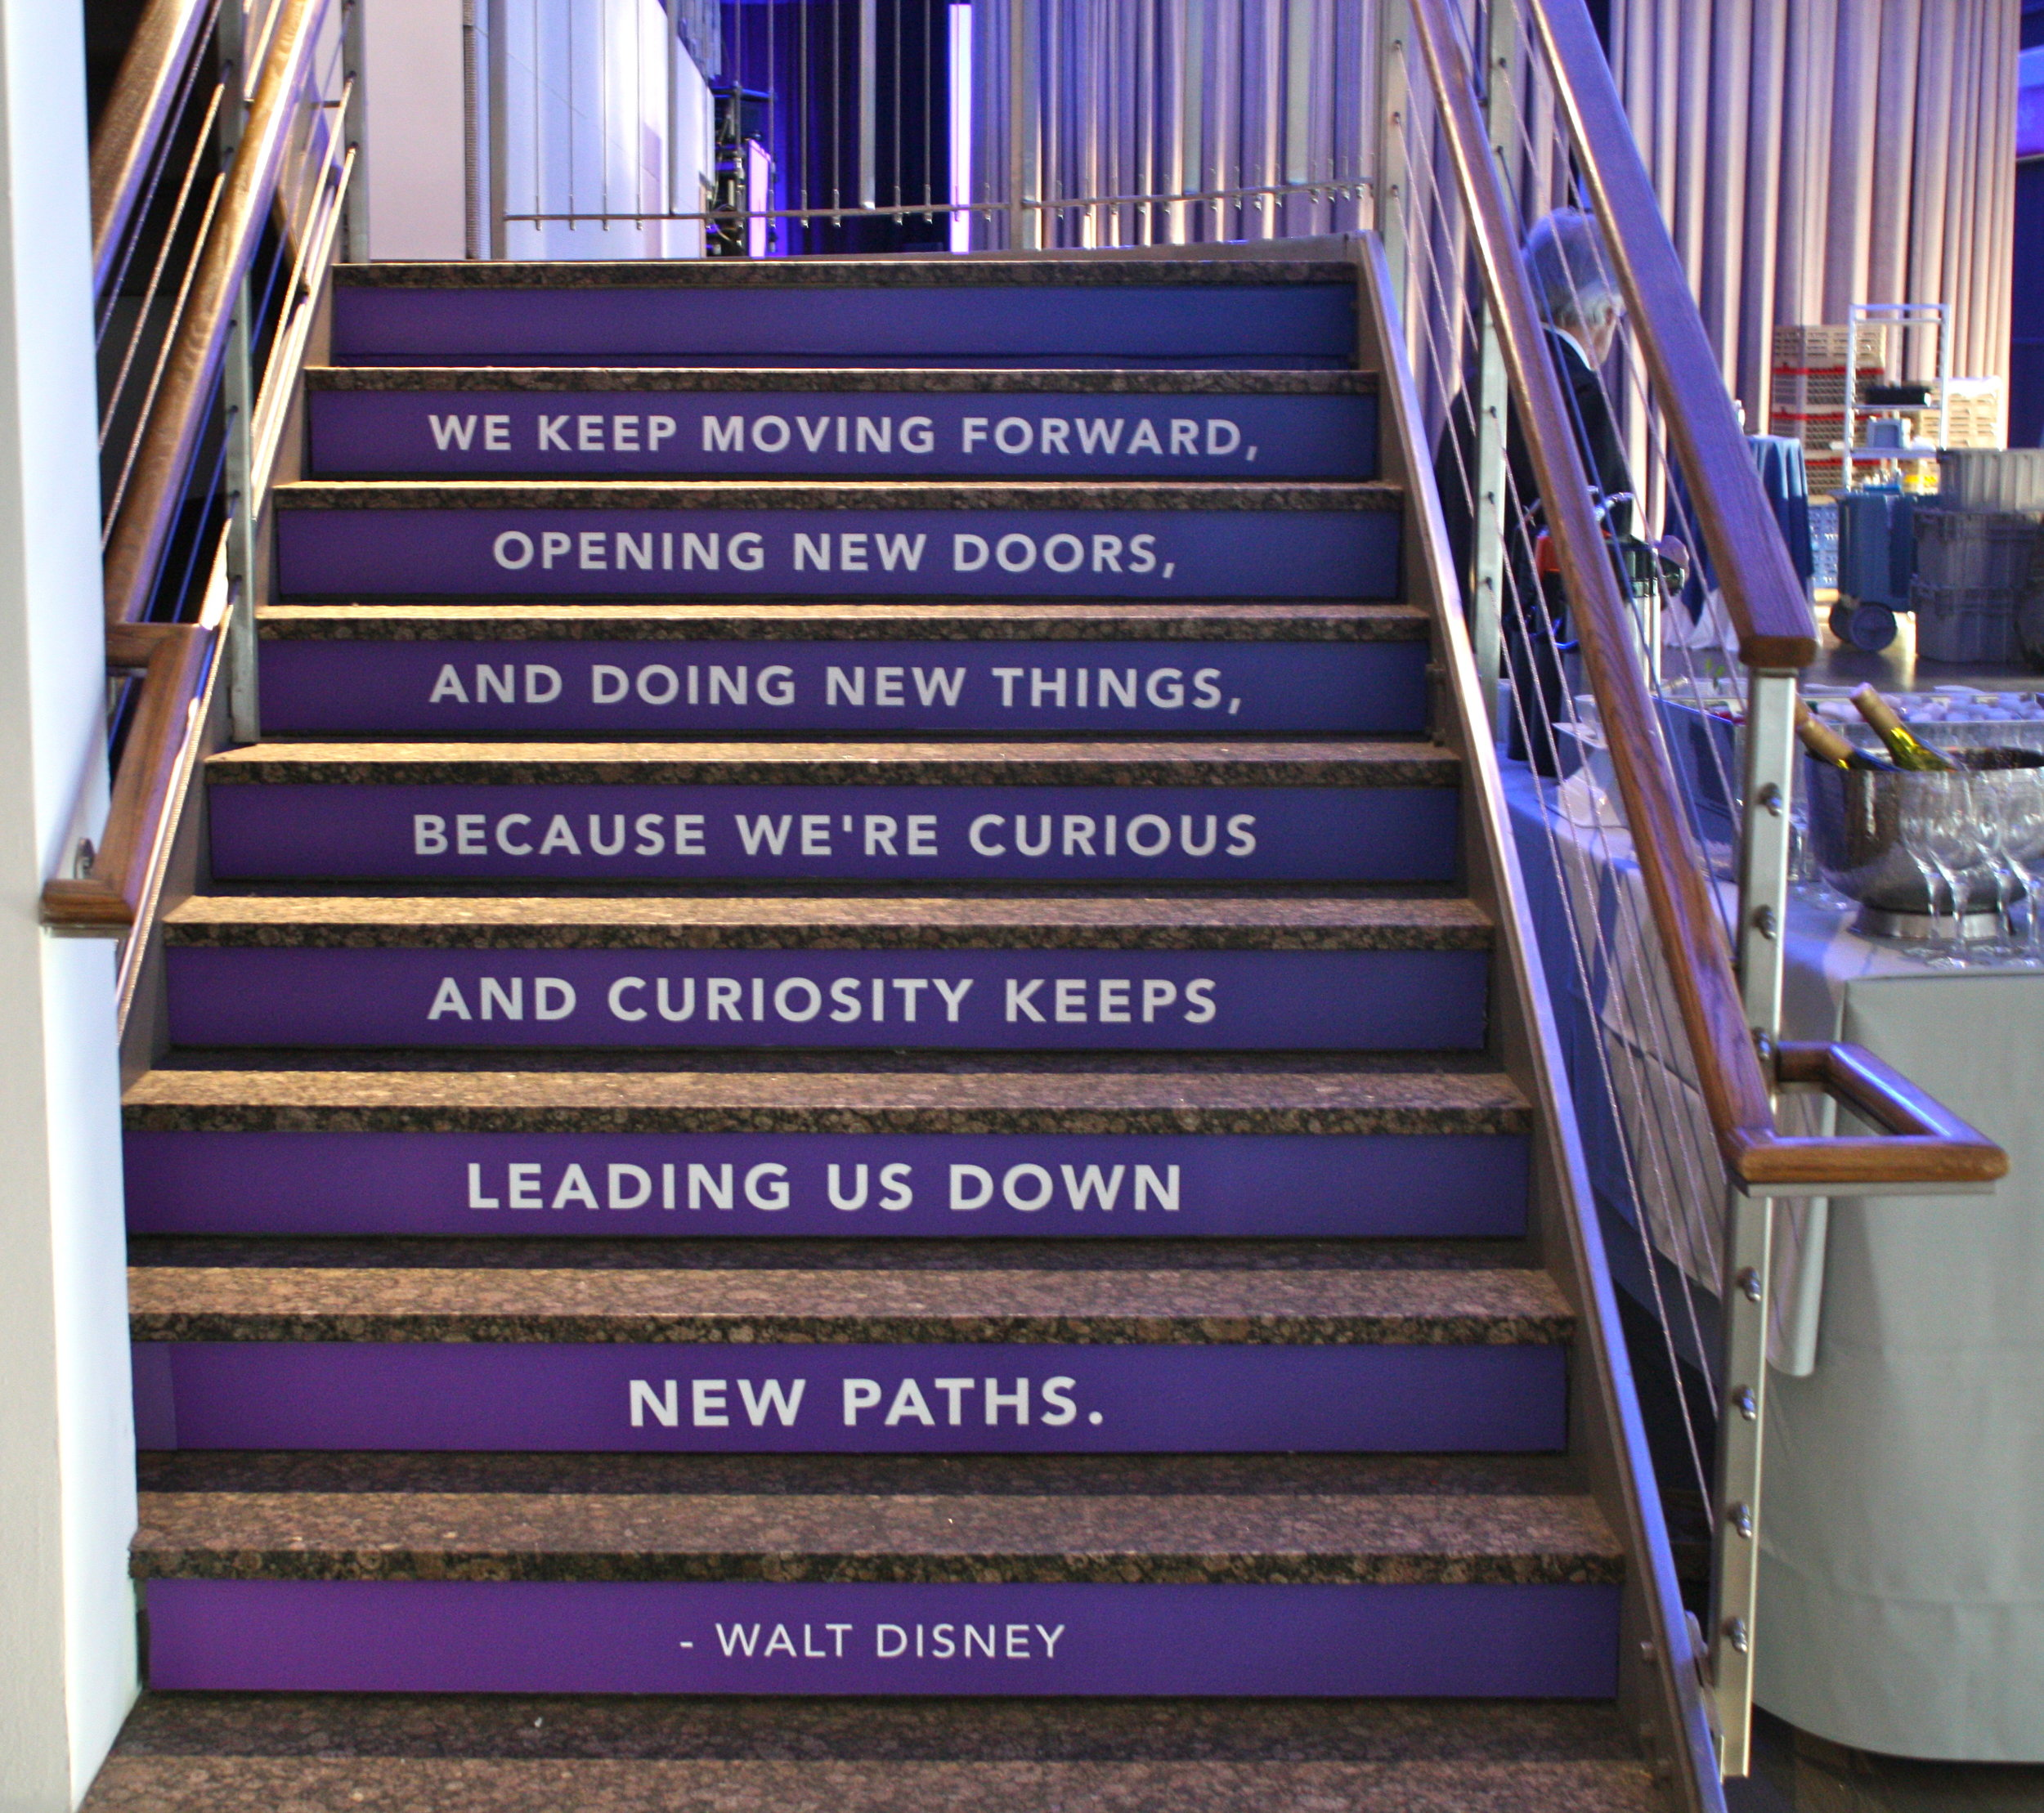 Some motivational words on our personalized staircase as you make your way to the second floor of Disney's recent event.